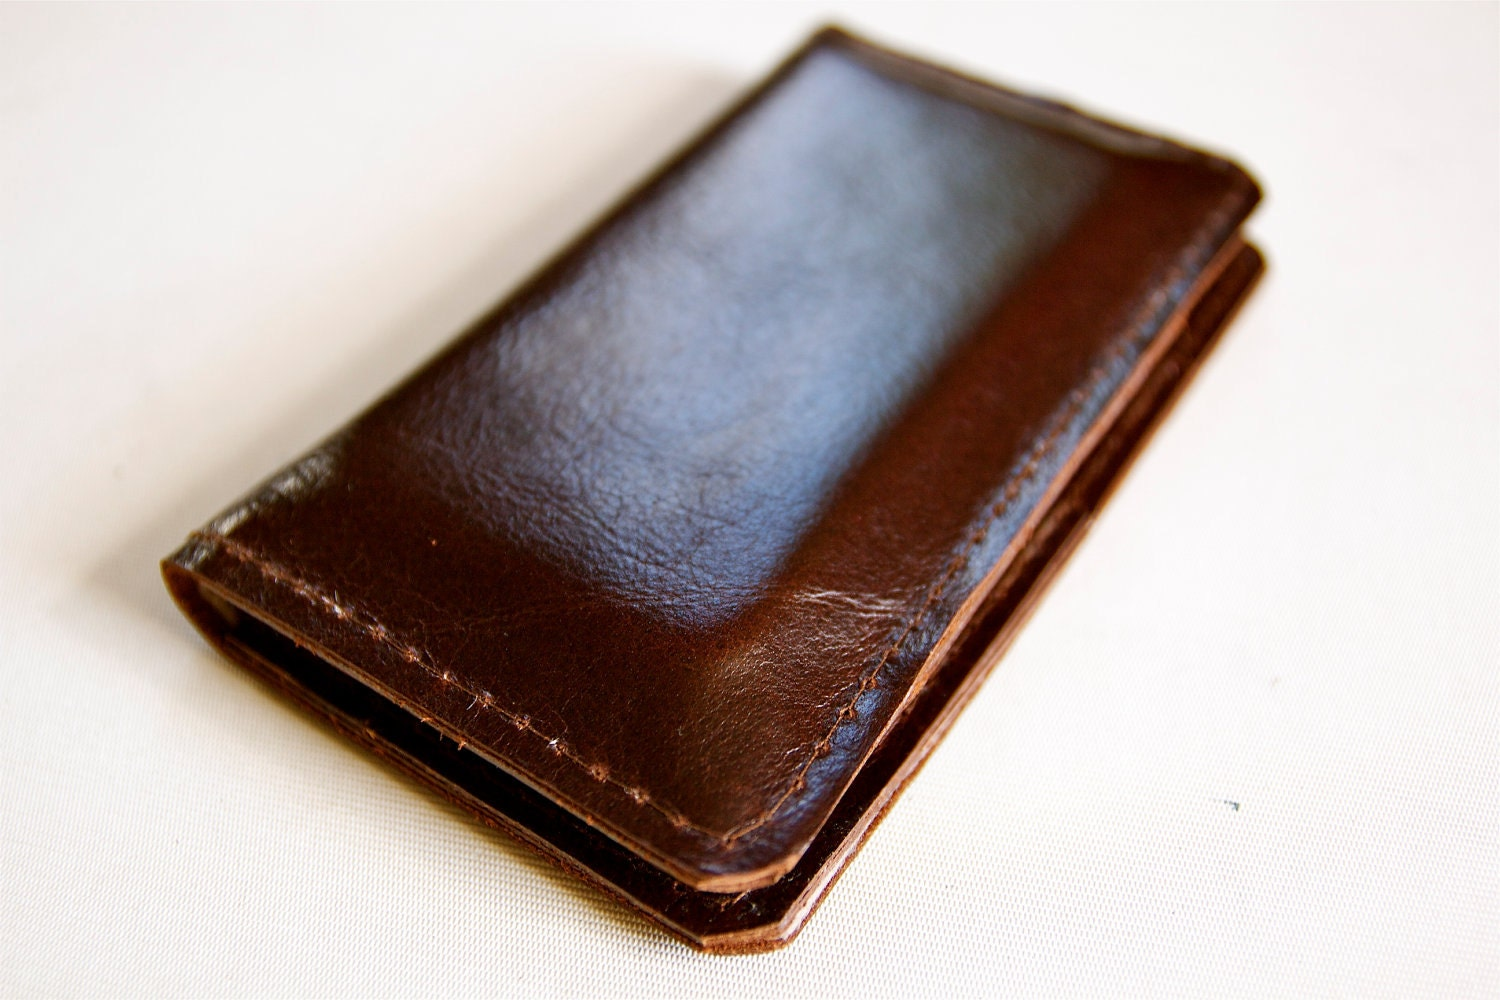 Leather iPhone Wallet in Dark Chocolate Brown - RobbieMoto